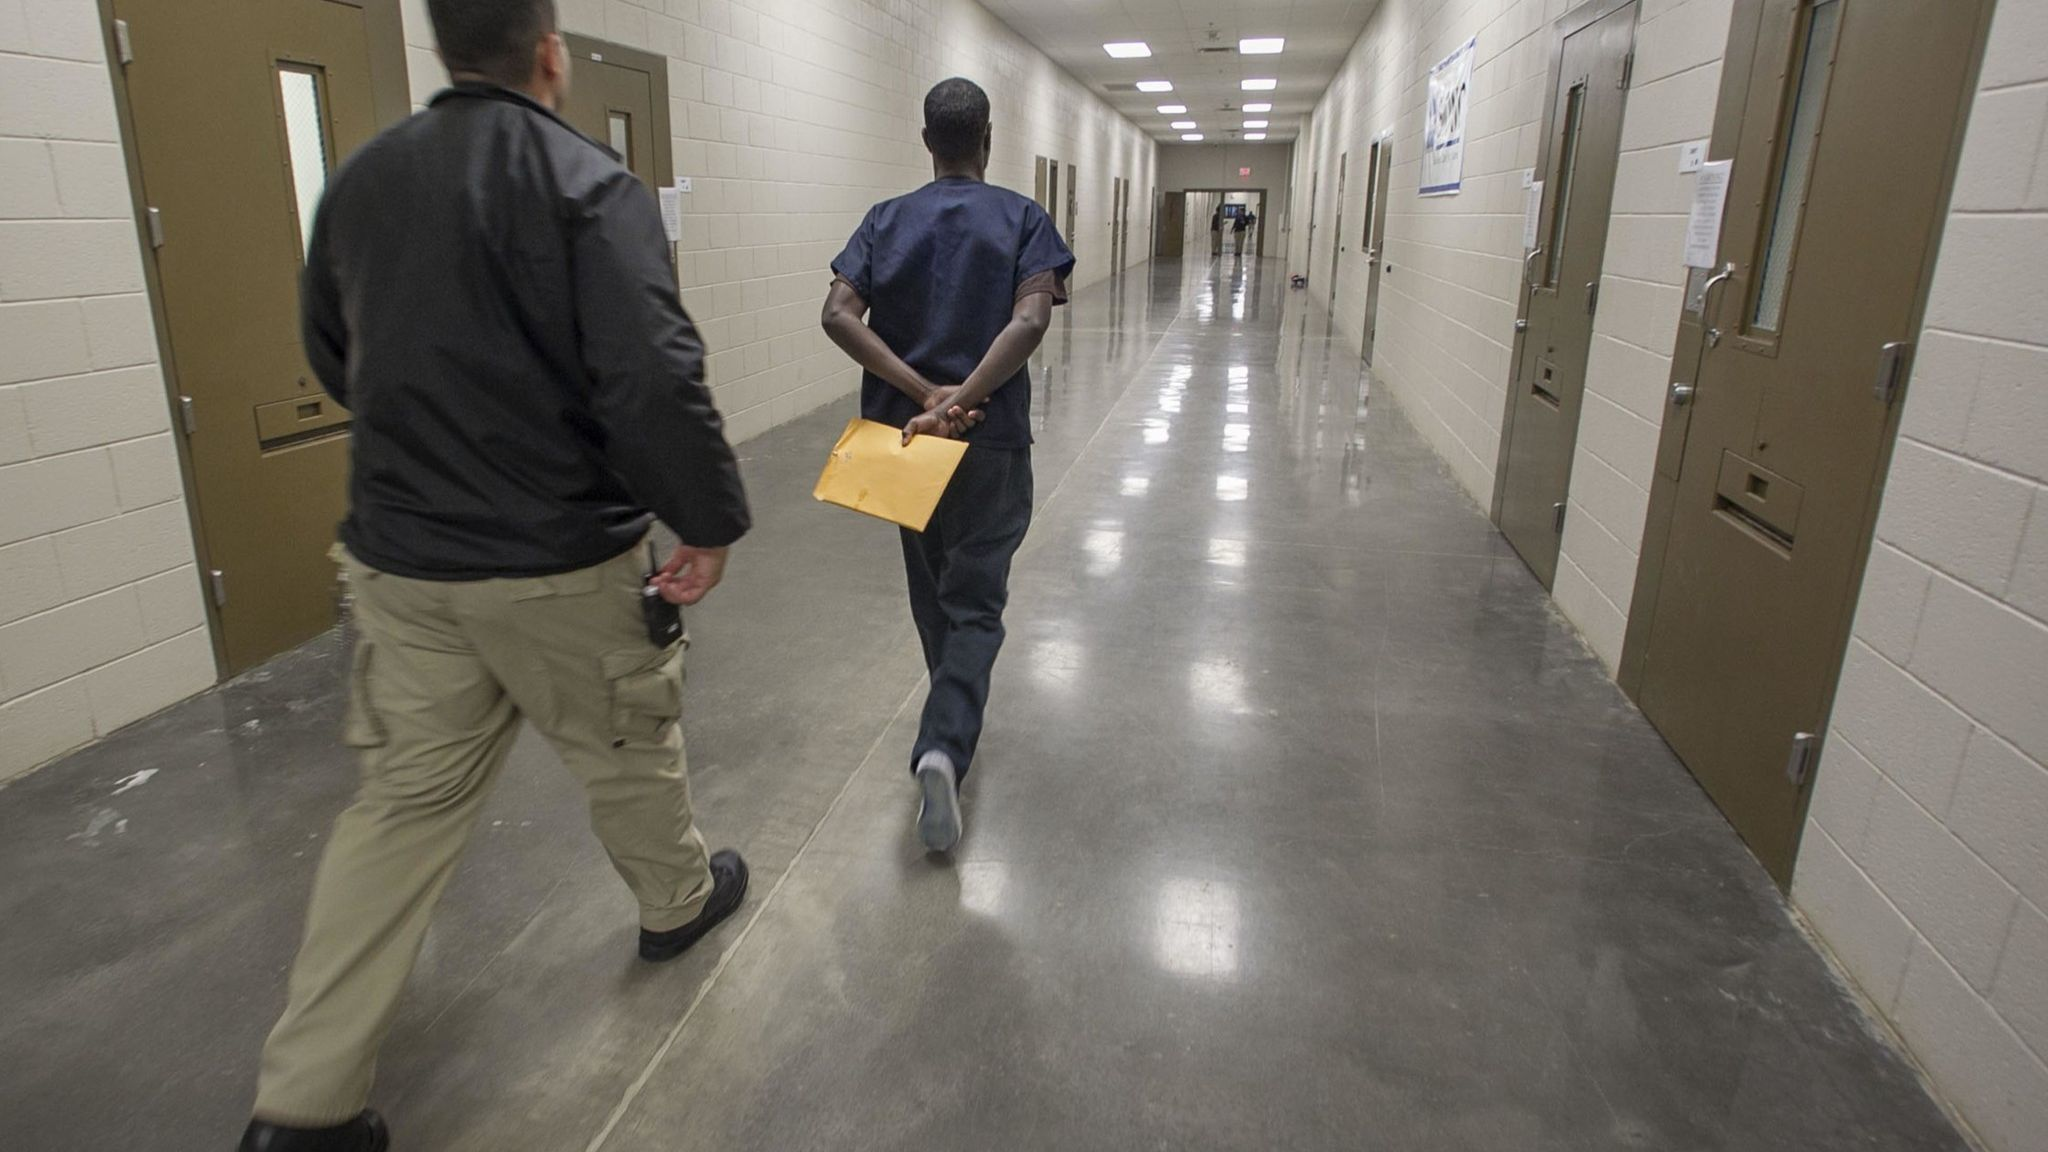 With or without criminal records, some immigrants spend many years in detention | Los Angeles Times